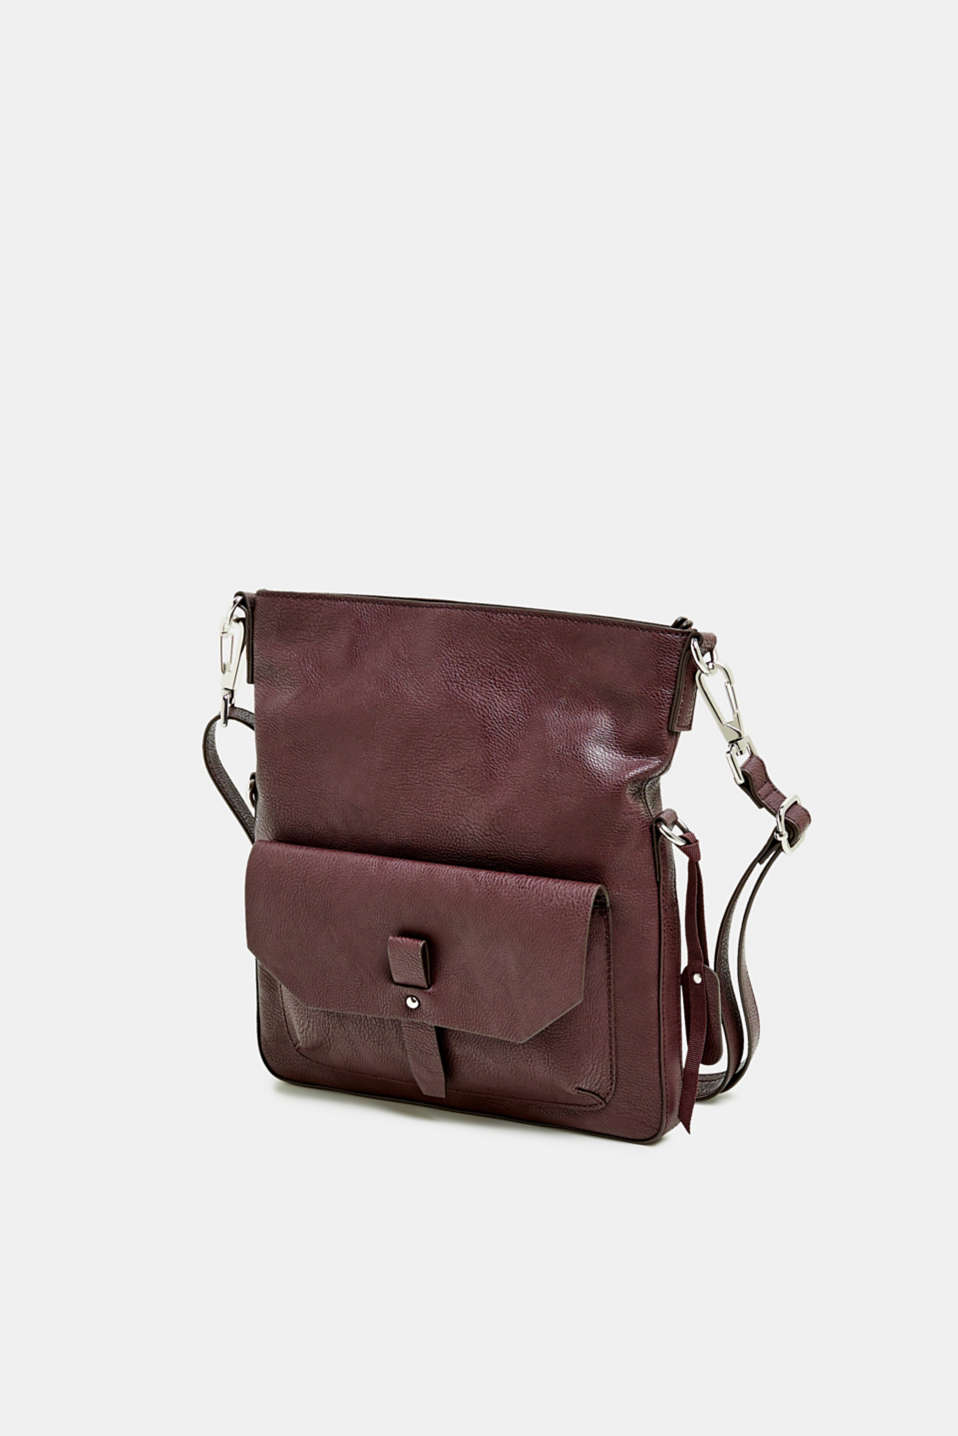 Flapover bag in faux leather, BORDEAUX RED, detail image number 2